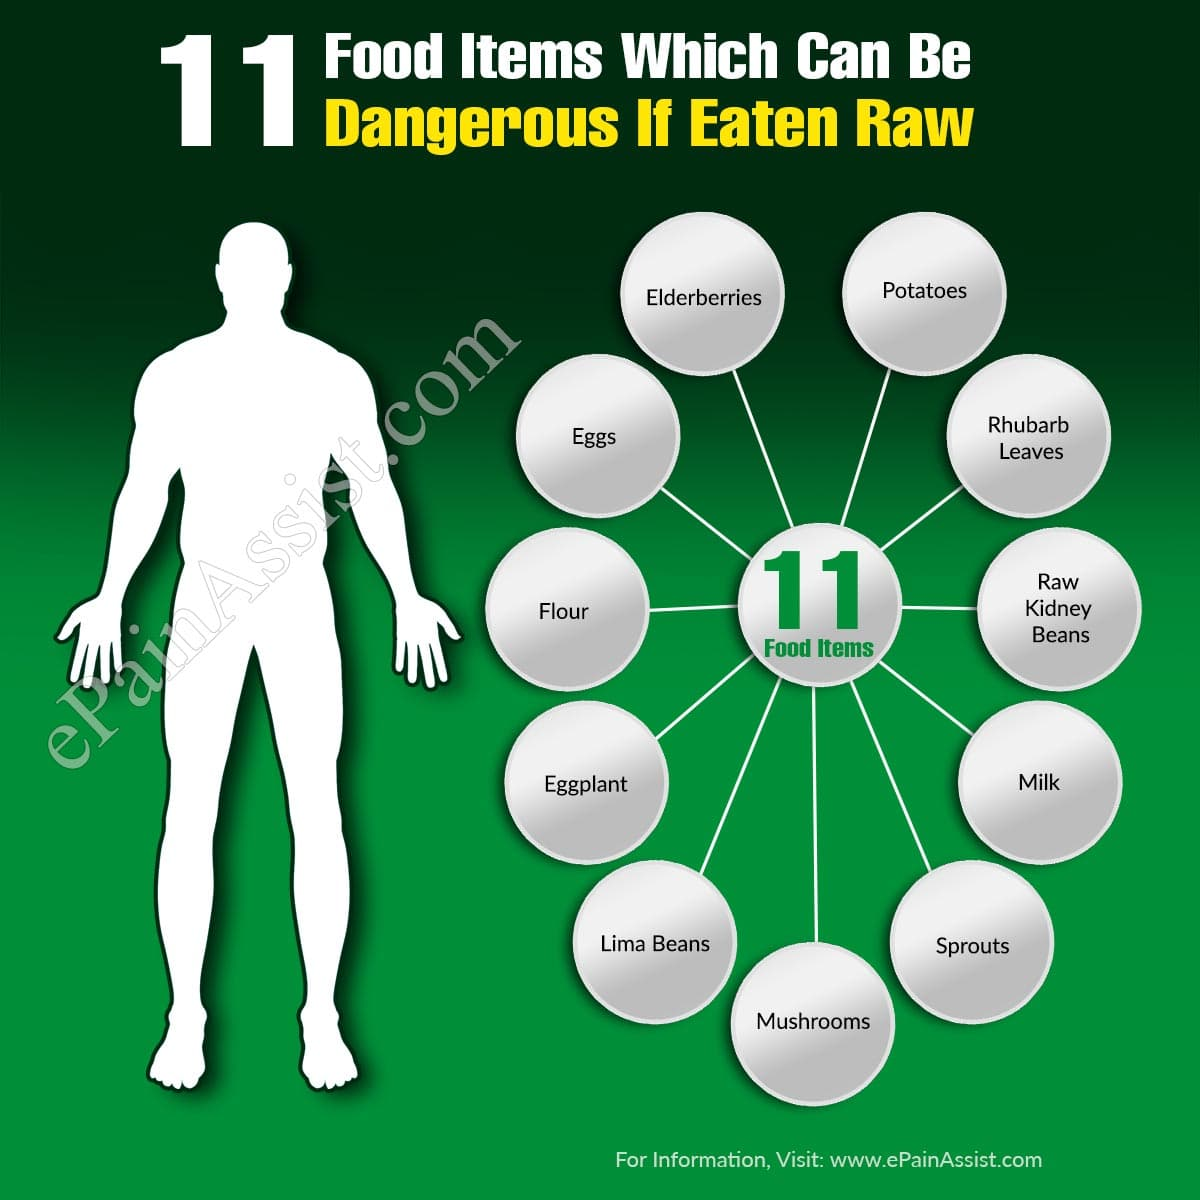 11 Food Items Which Can Be Dangerous If Eaten Raw